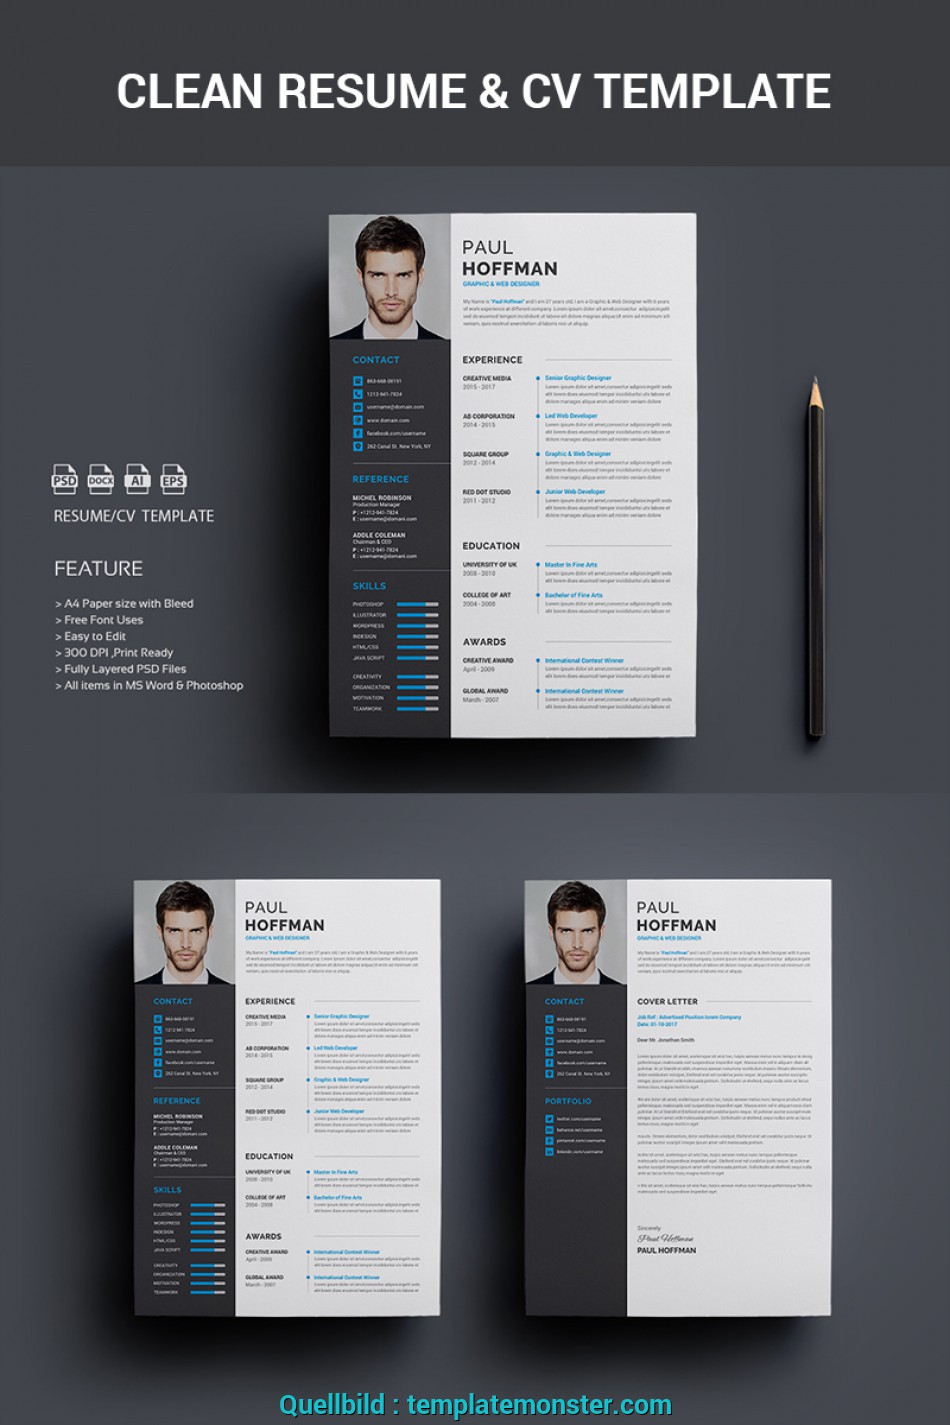 Kostbar 40 Best 2019\'S Creative Resume/CV Templates, Printable DOC ...